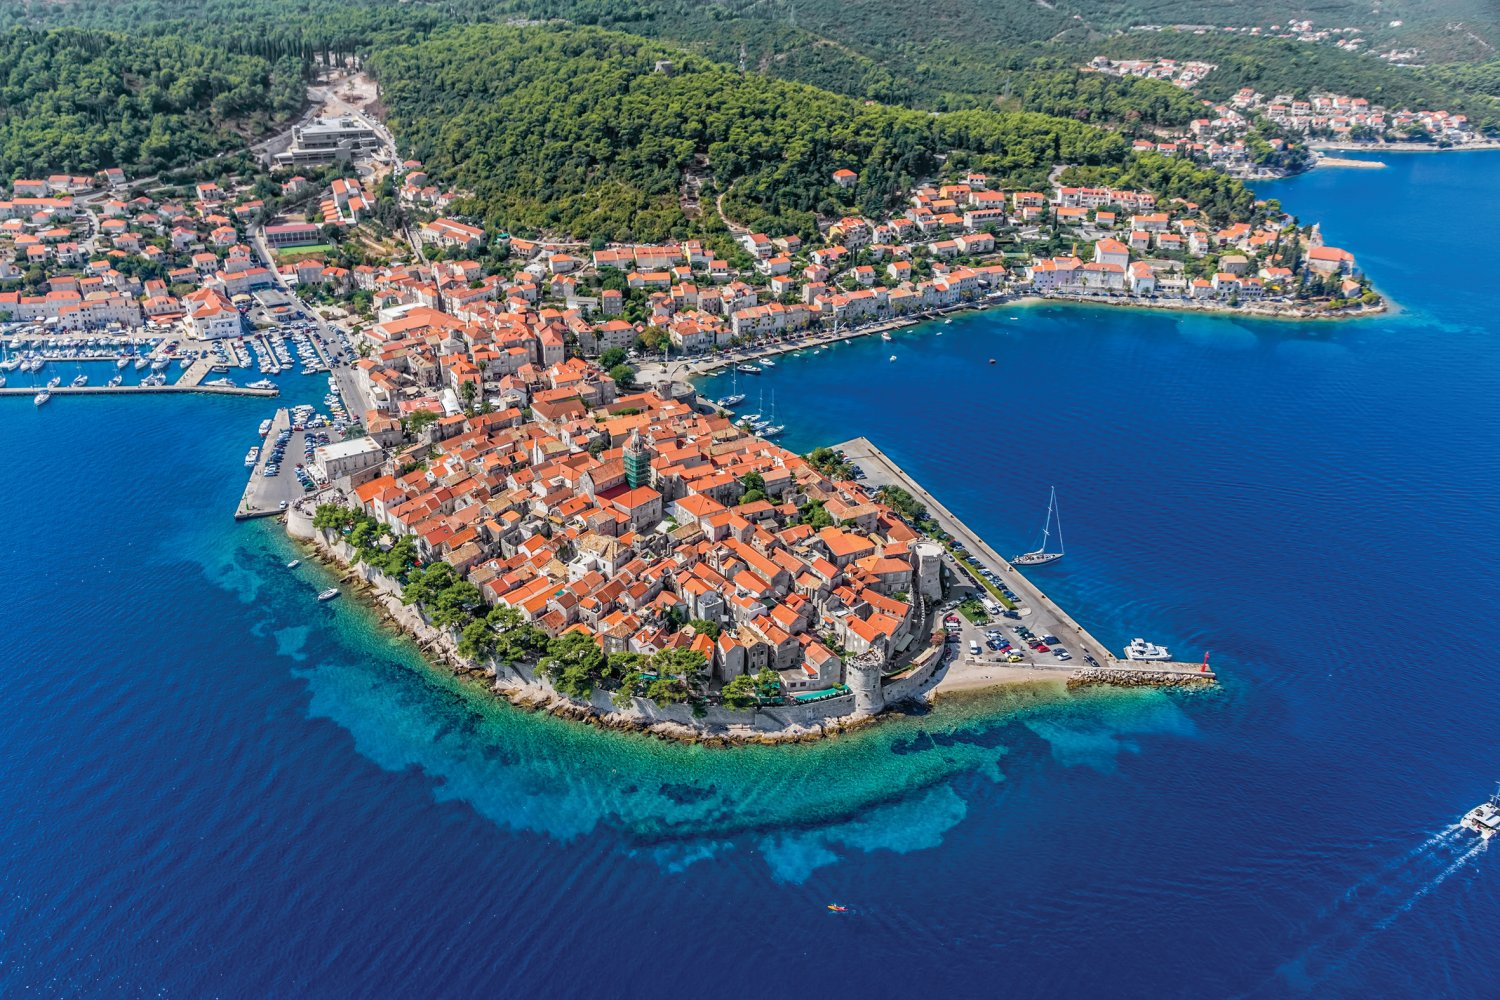 Croatian islands, Korcula, old town